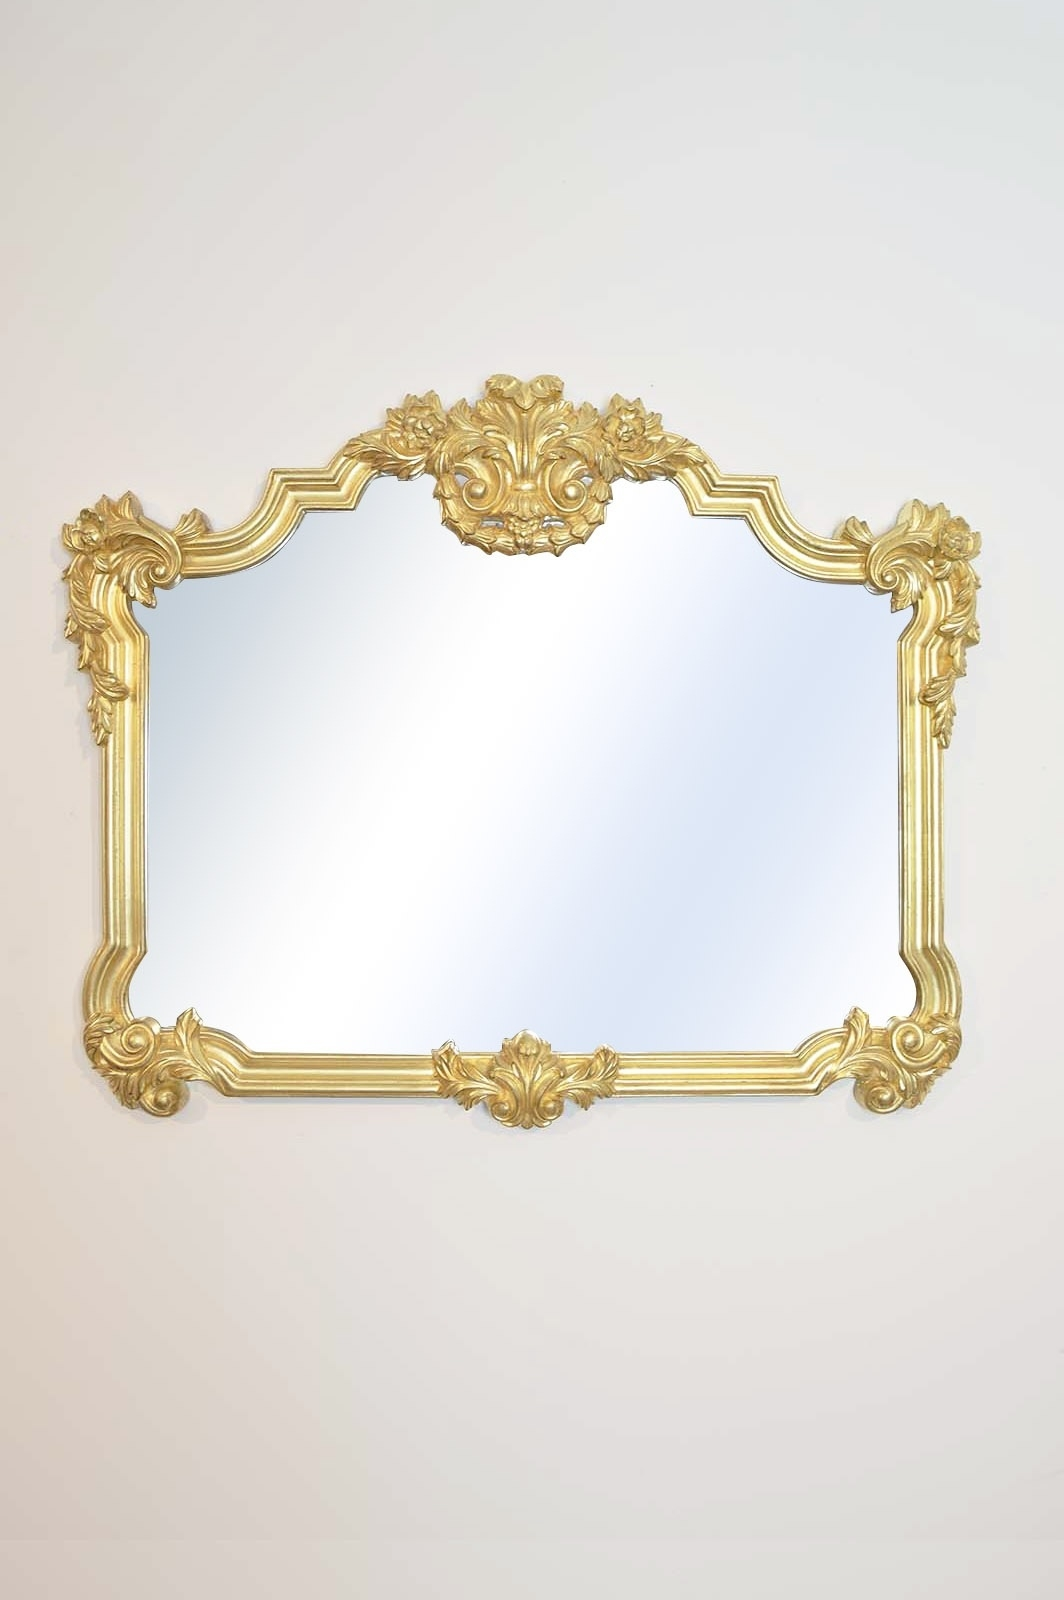 Gold Rococo Style Ornate Overmantle Mirror Lg120 Throughout Rococo Style Mirrors (Image 7 of 15)